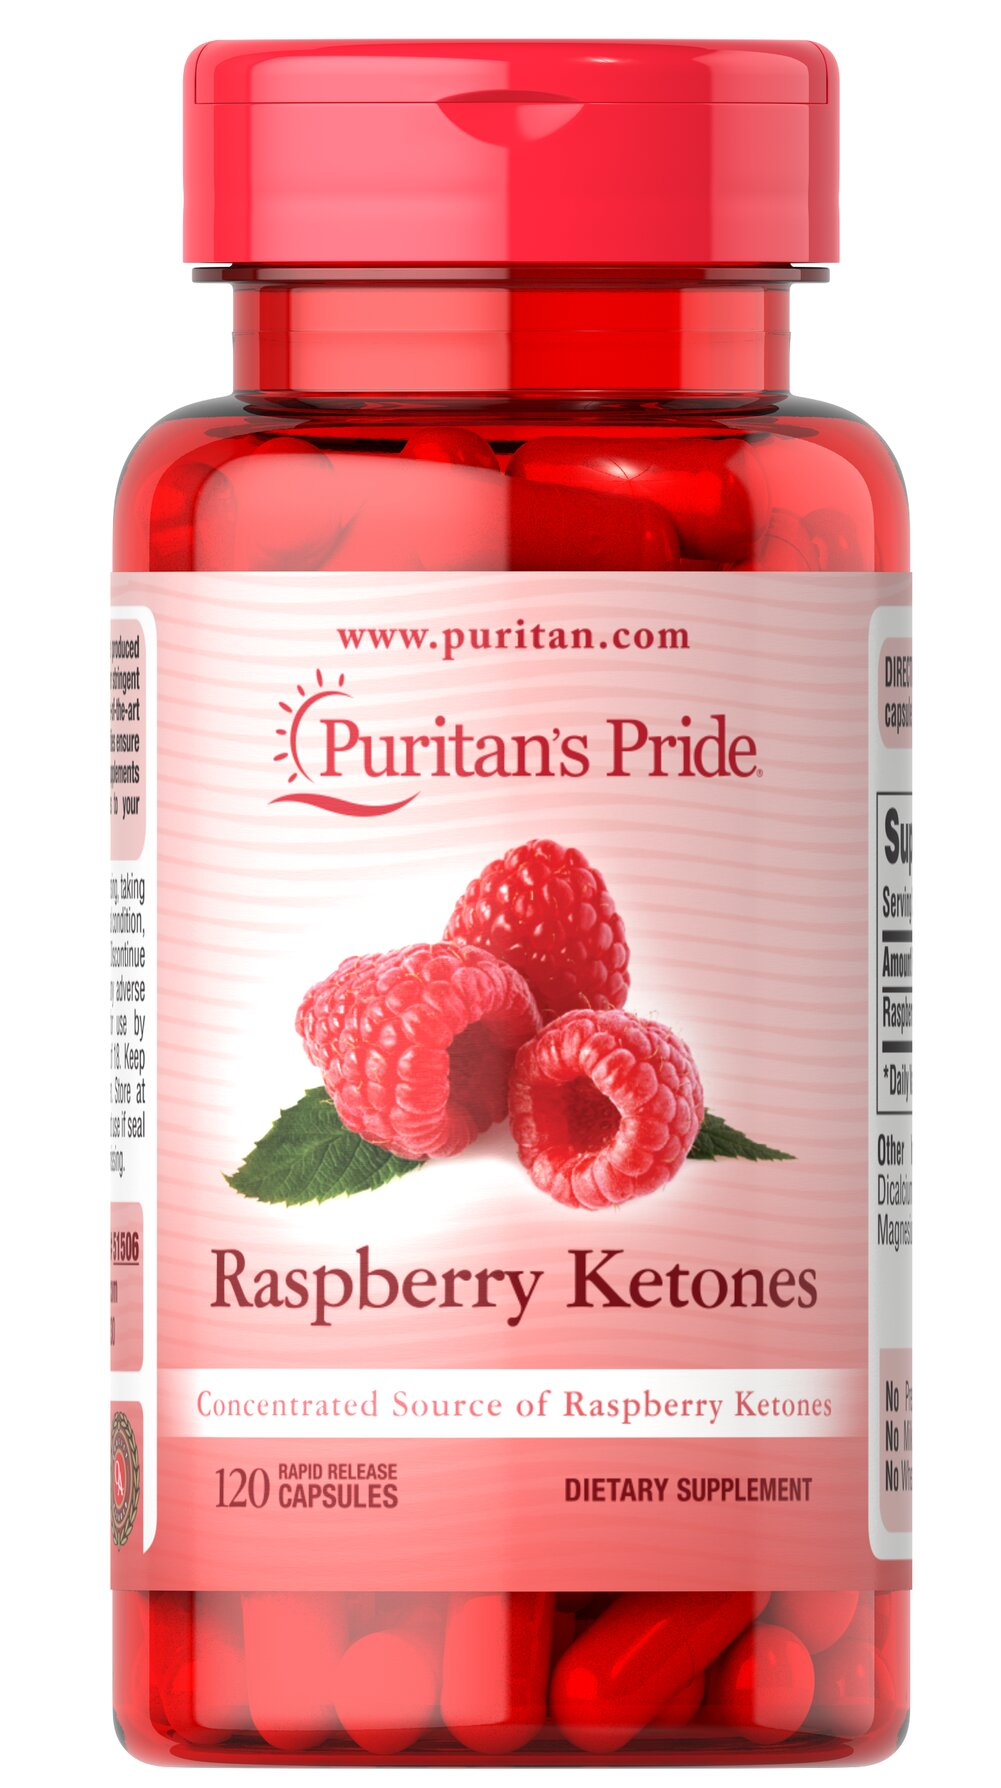 Raspberry Ketones 100 mg <p><span></span>Concentrated source of Raspberry Ketones.</p><p><span></span>100mg in one serving.</p><p><span></span>Rapid release capsules.</p><p>Our Raspberry Ketones are highly concentrated. Each serving of this dietary supplement contains 100mg of raspberry ketones.</p> 120 Rapid Release Capsules 100 mg $19.99